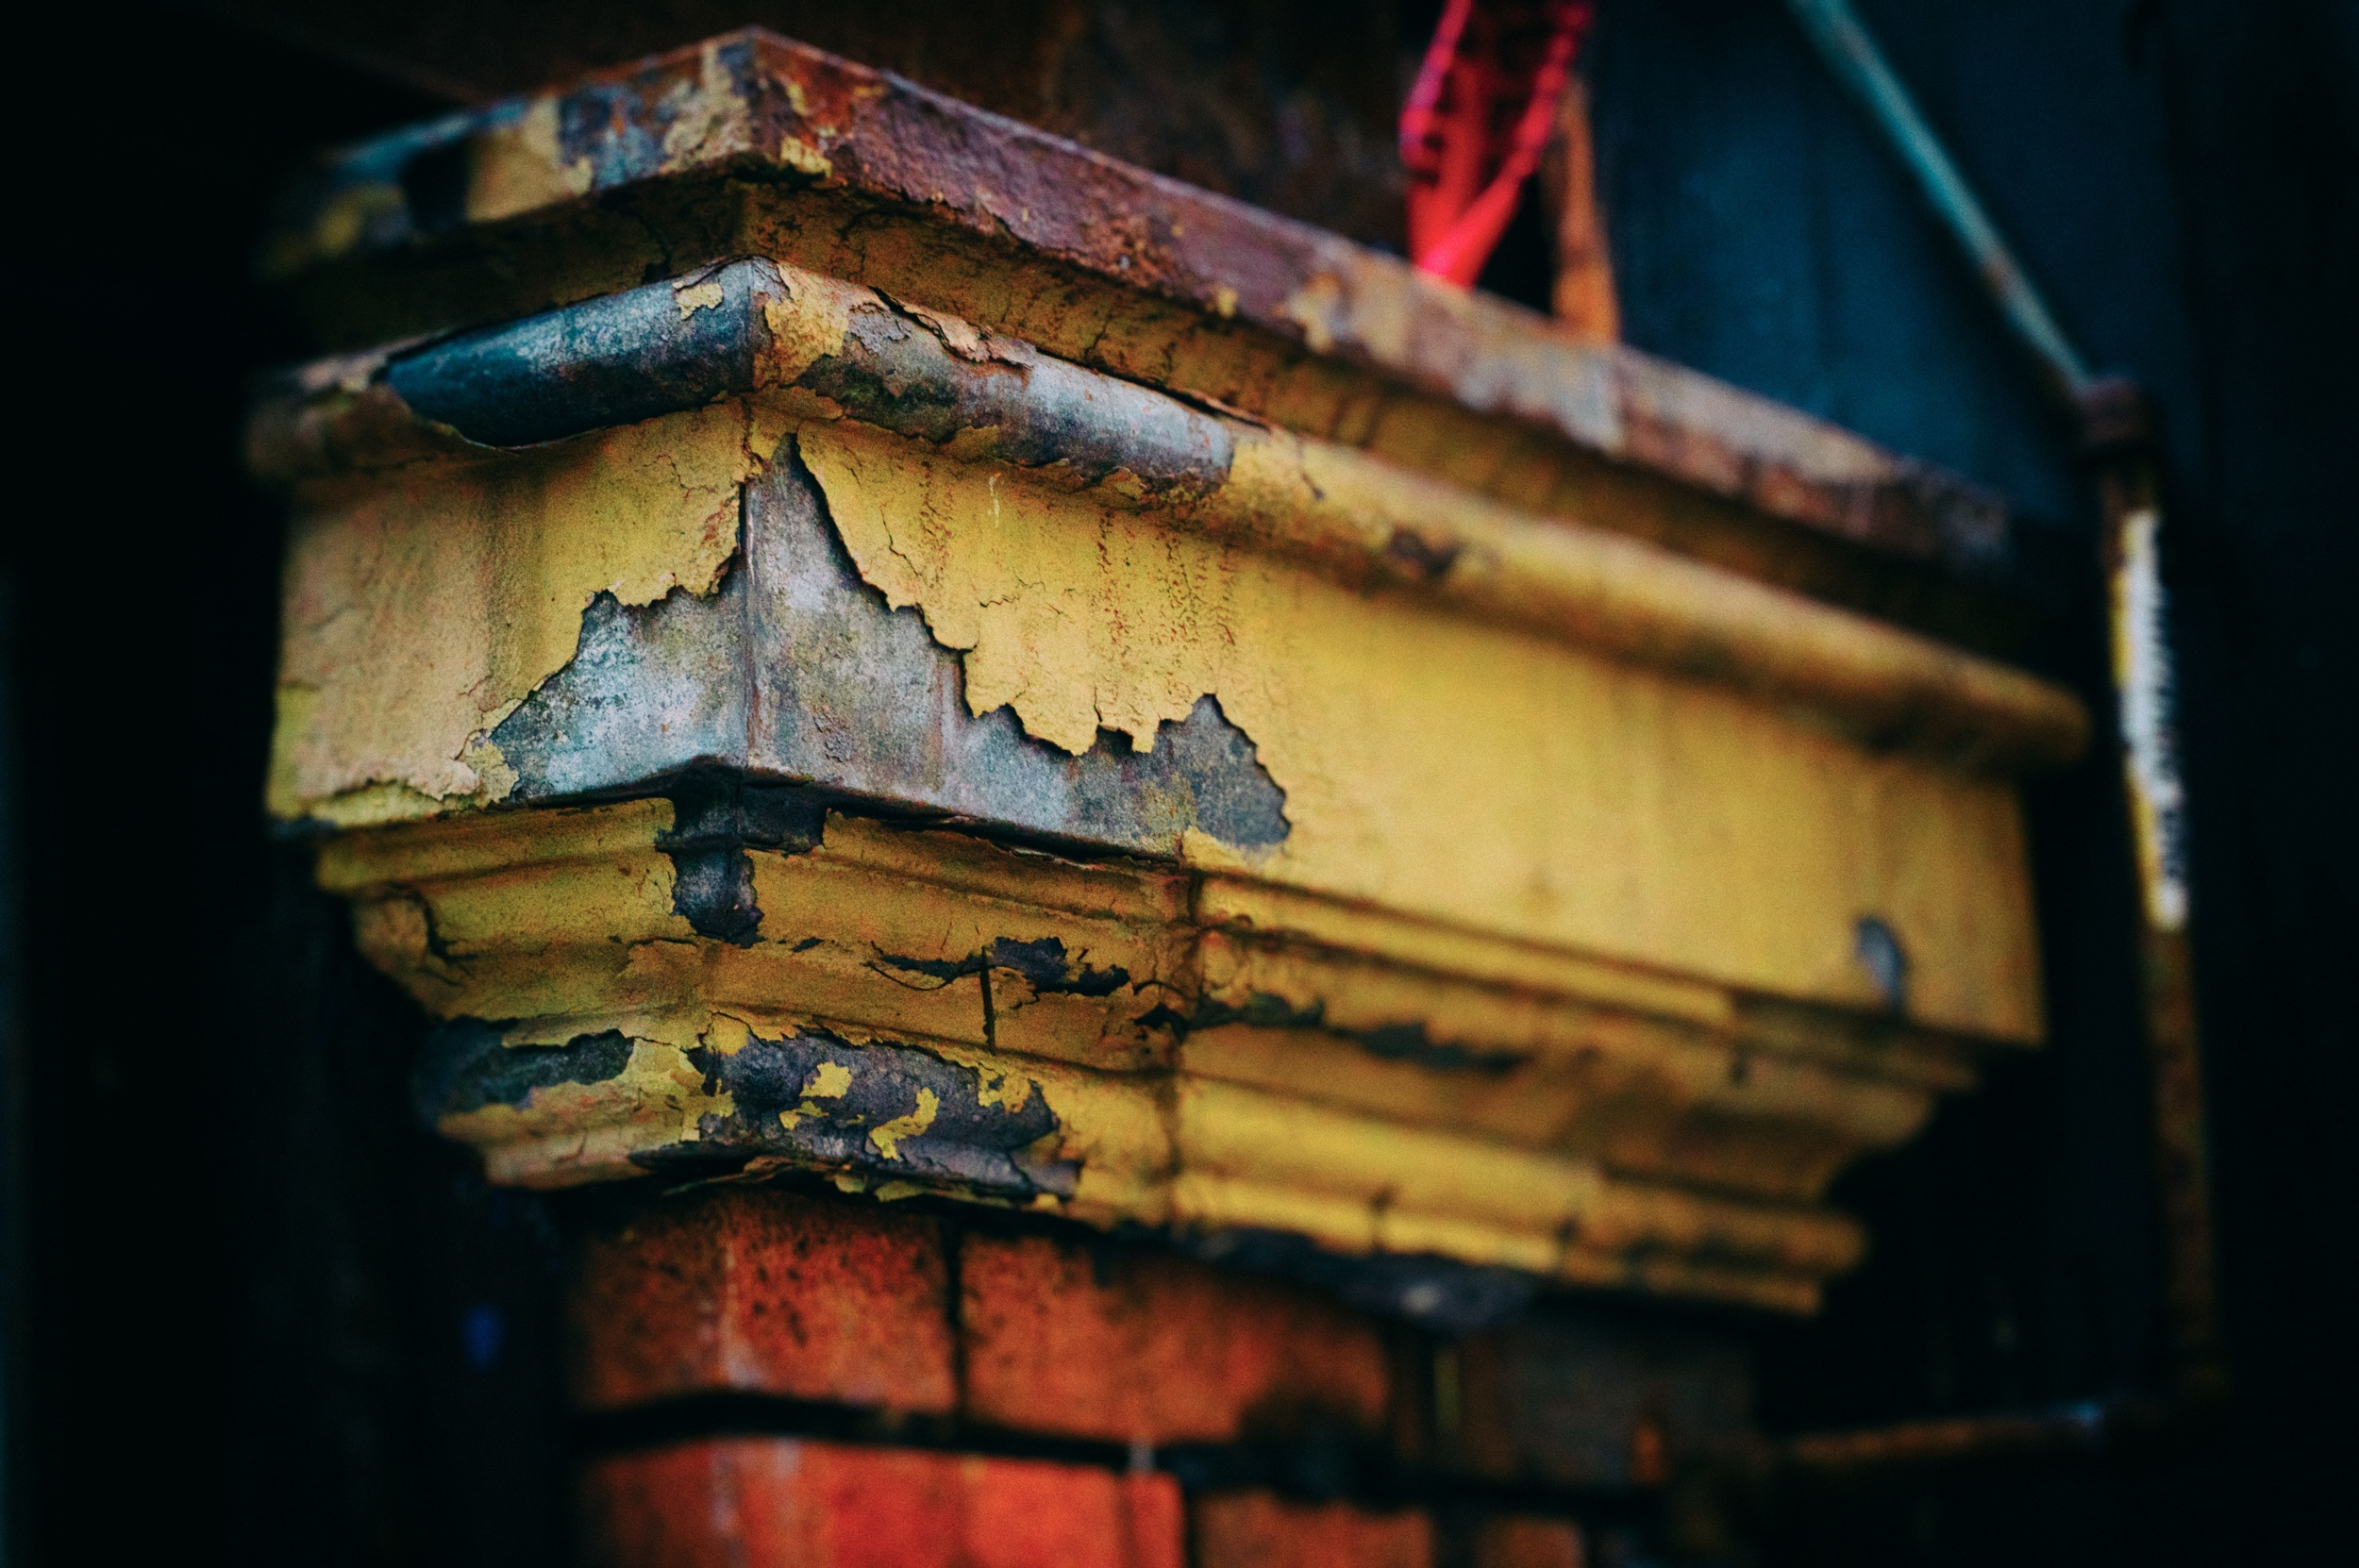 An old gutter becomes a wonderful combination of texture and colour. Canon EOS 7D EF 50mm f/1.4 at f/18 1/50 ISO 320